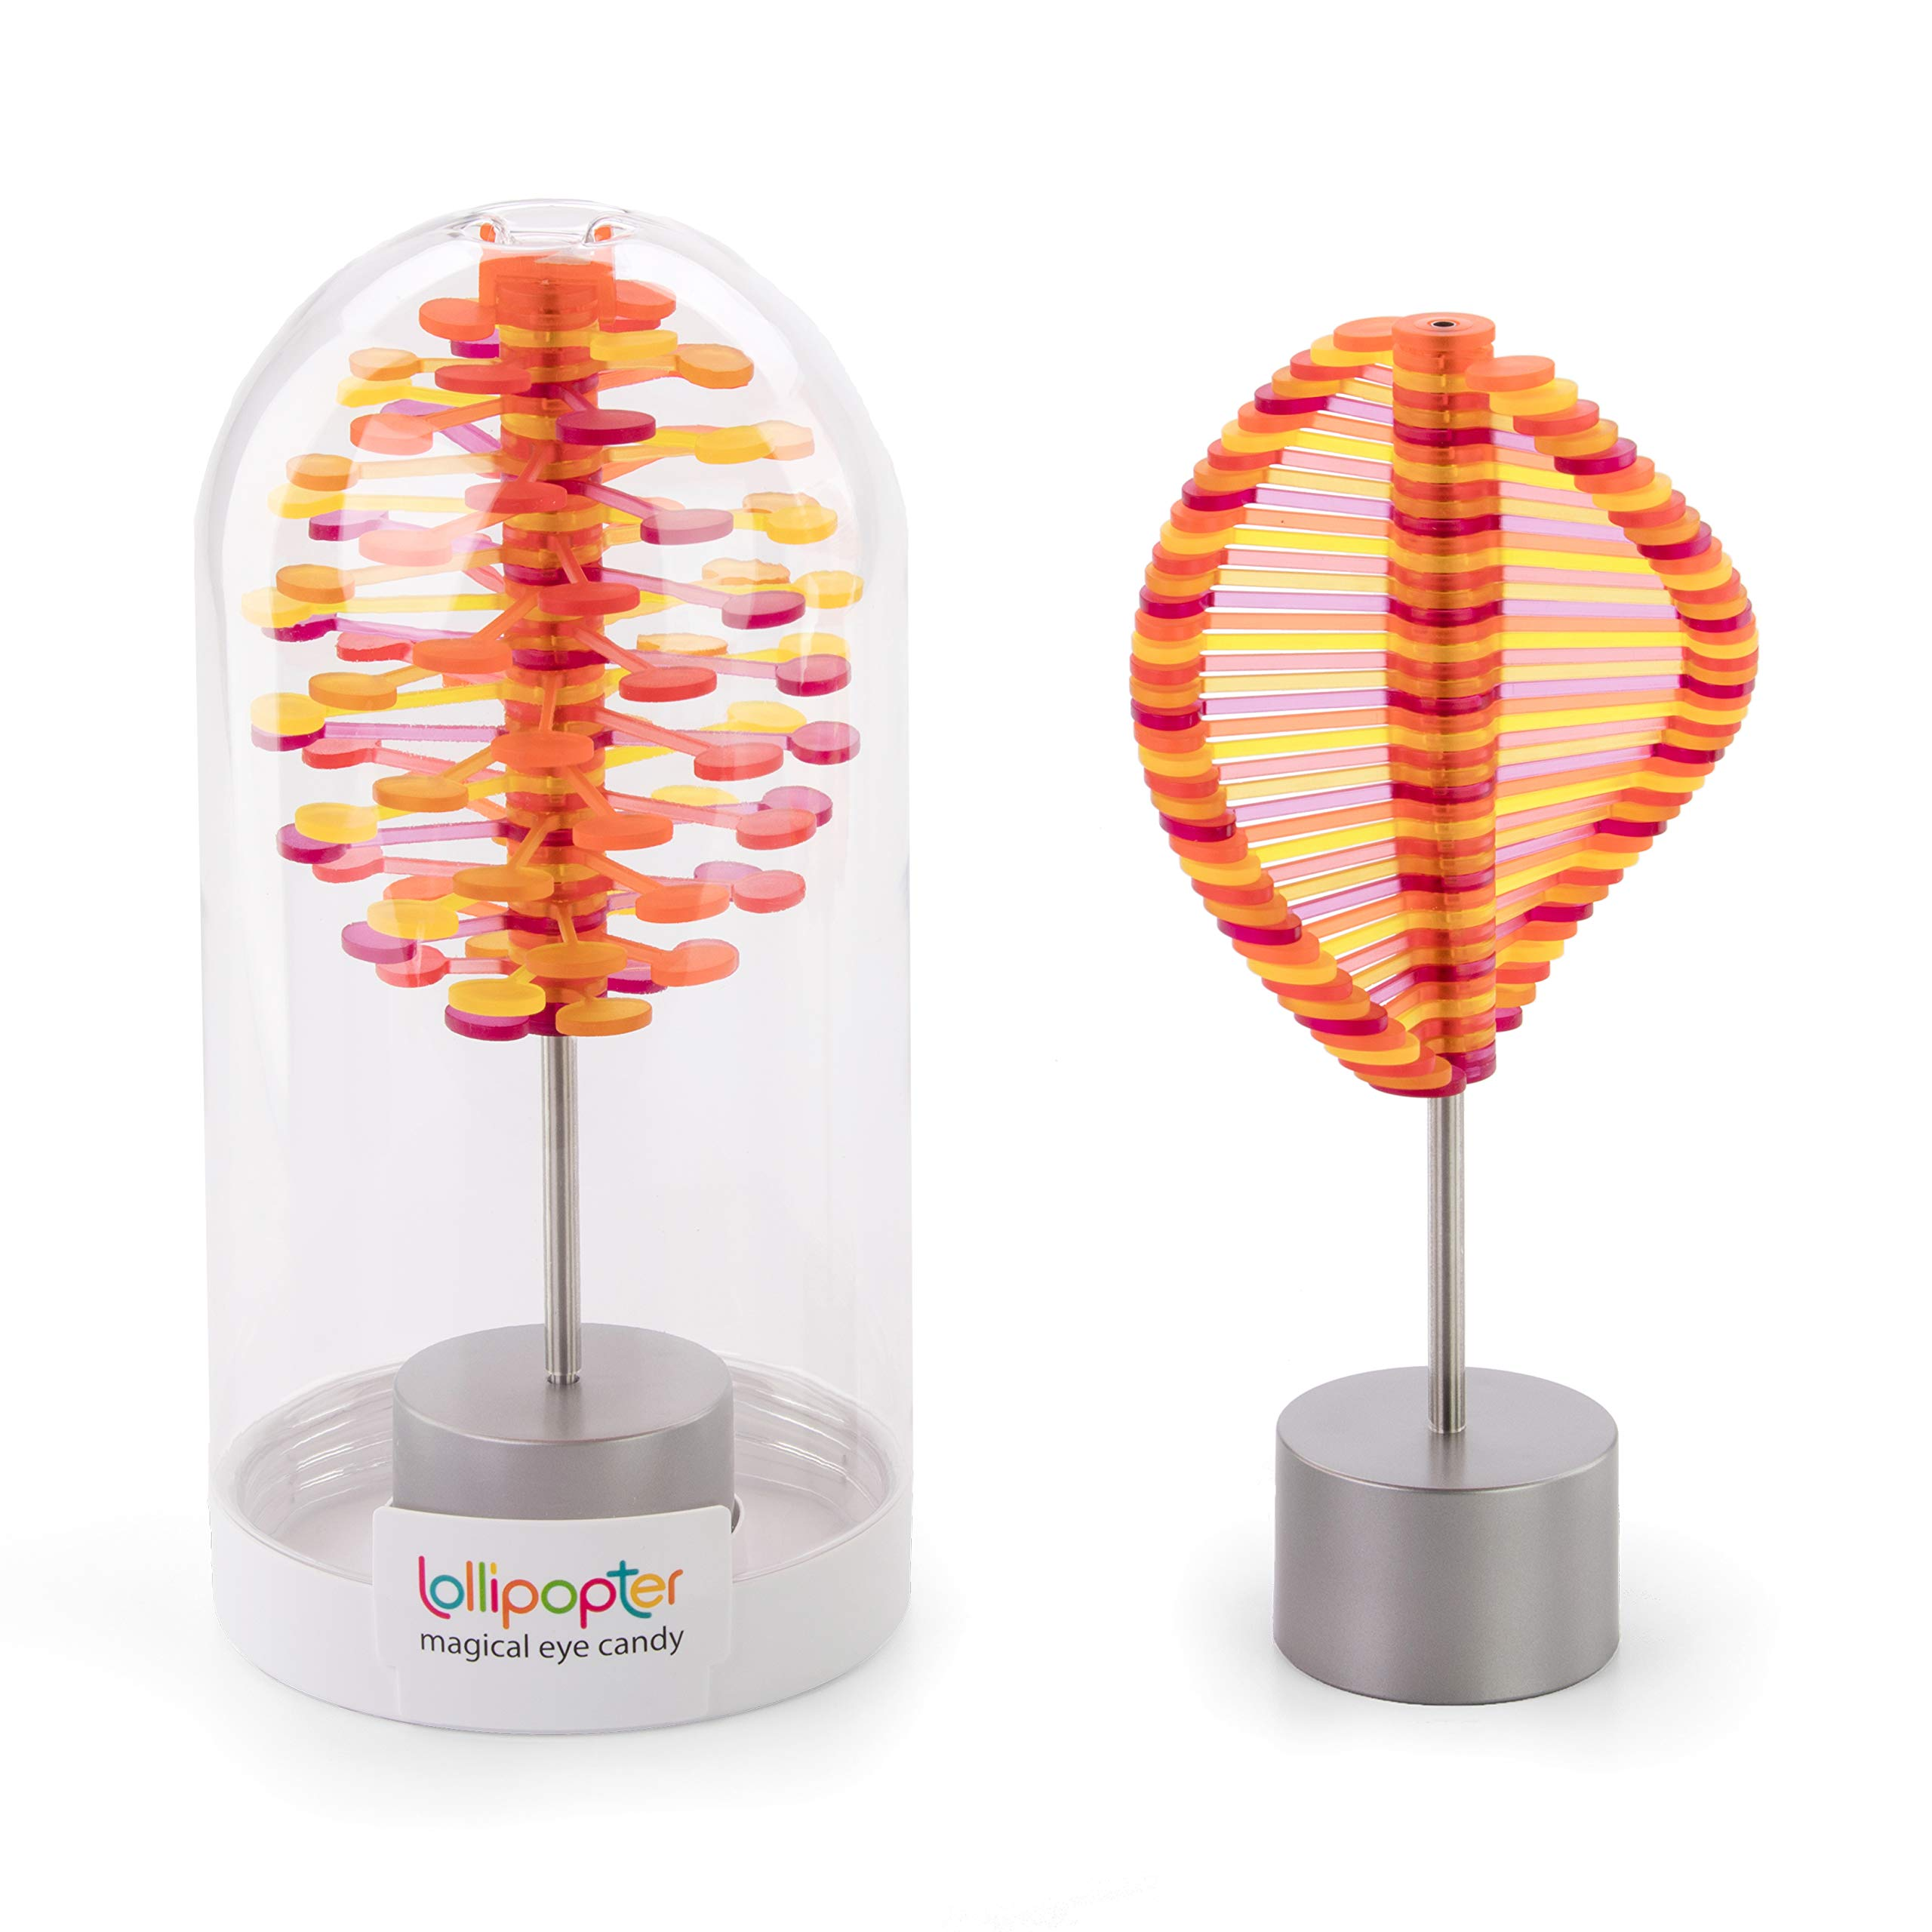 playableART A0456 Lollipopter - Mango Fandango Translucent (Domed Tube Packaging) Toy, Large by playableART